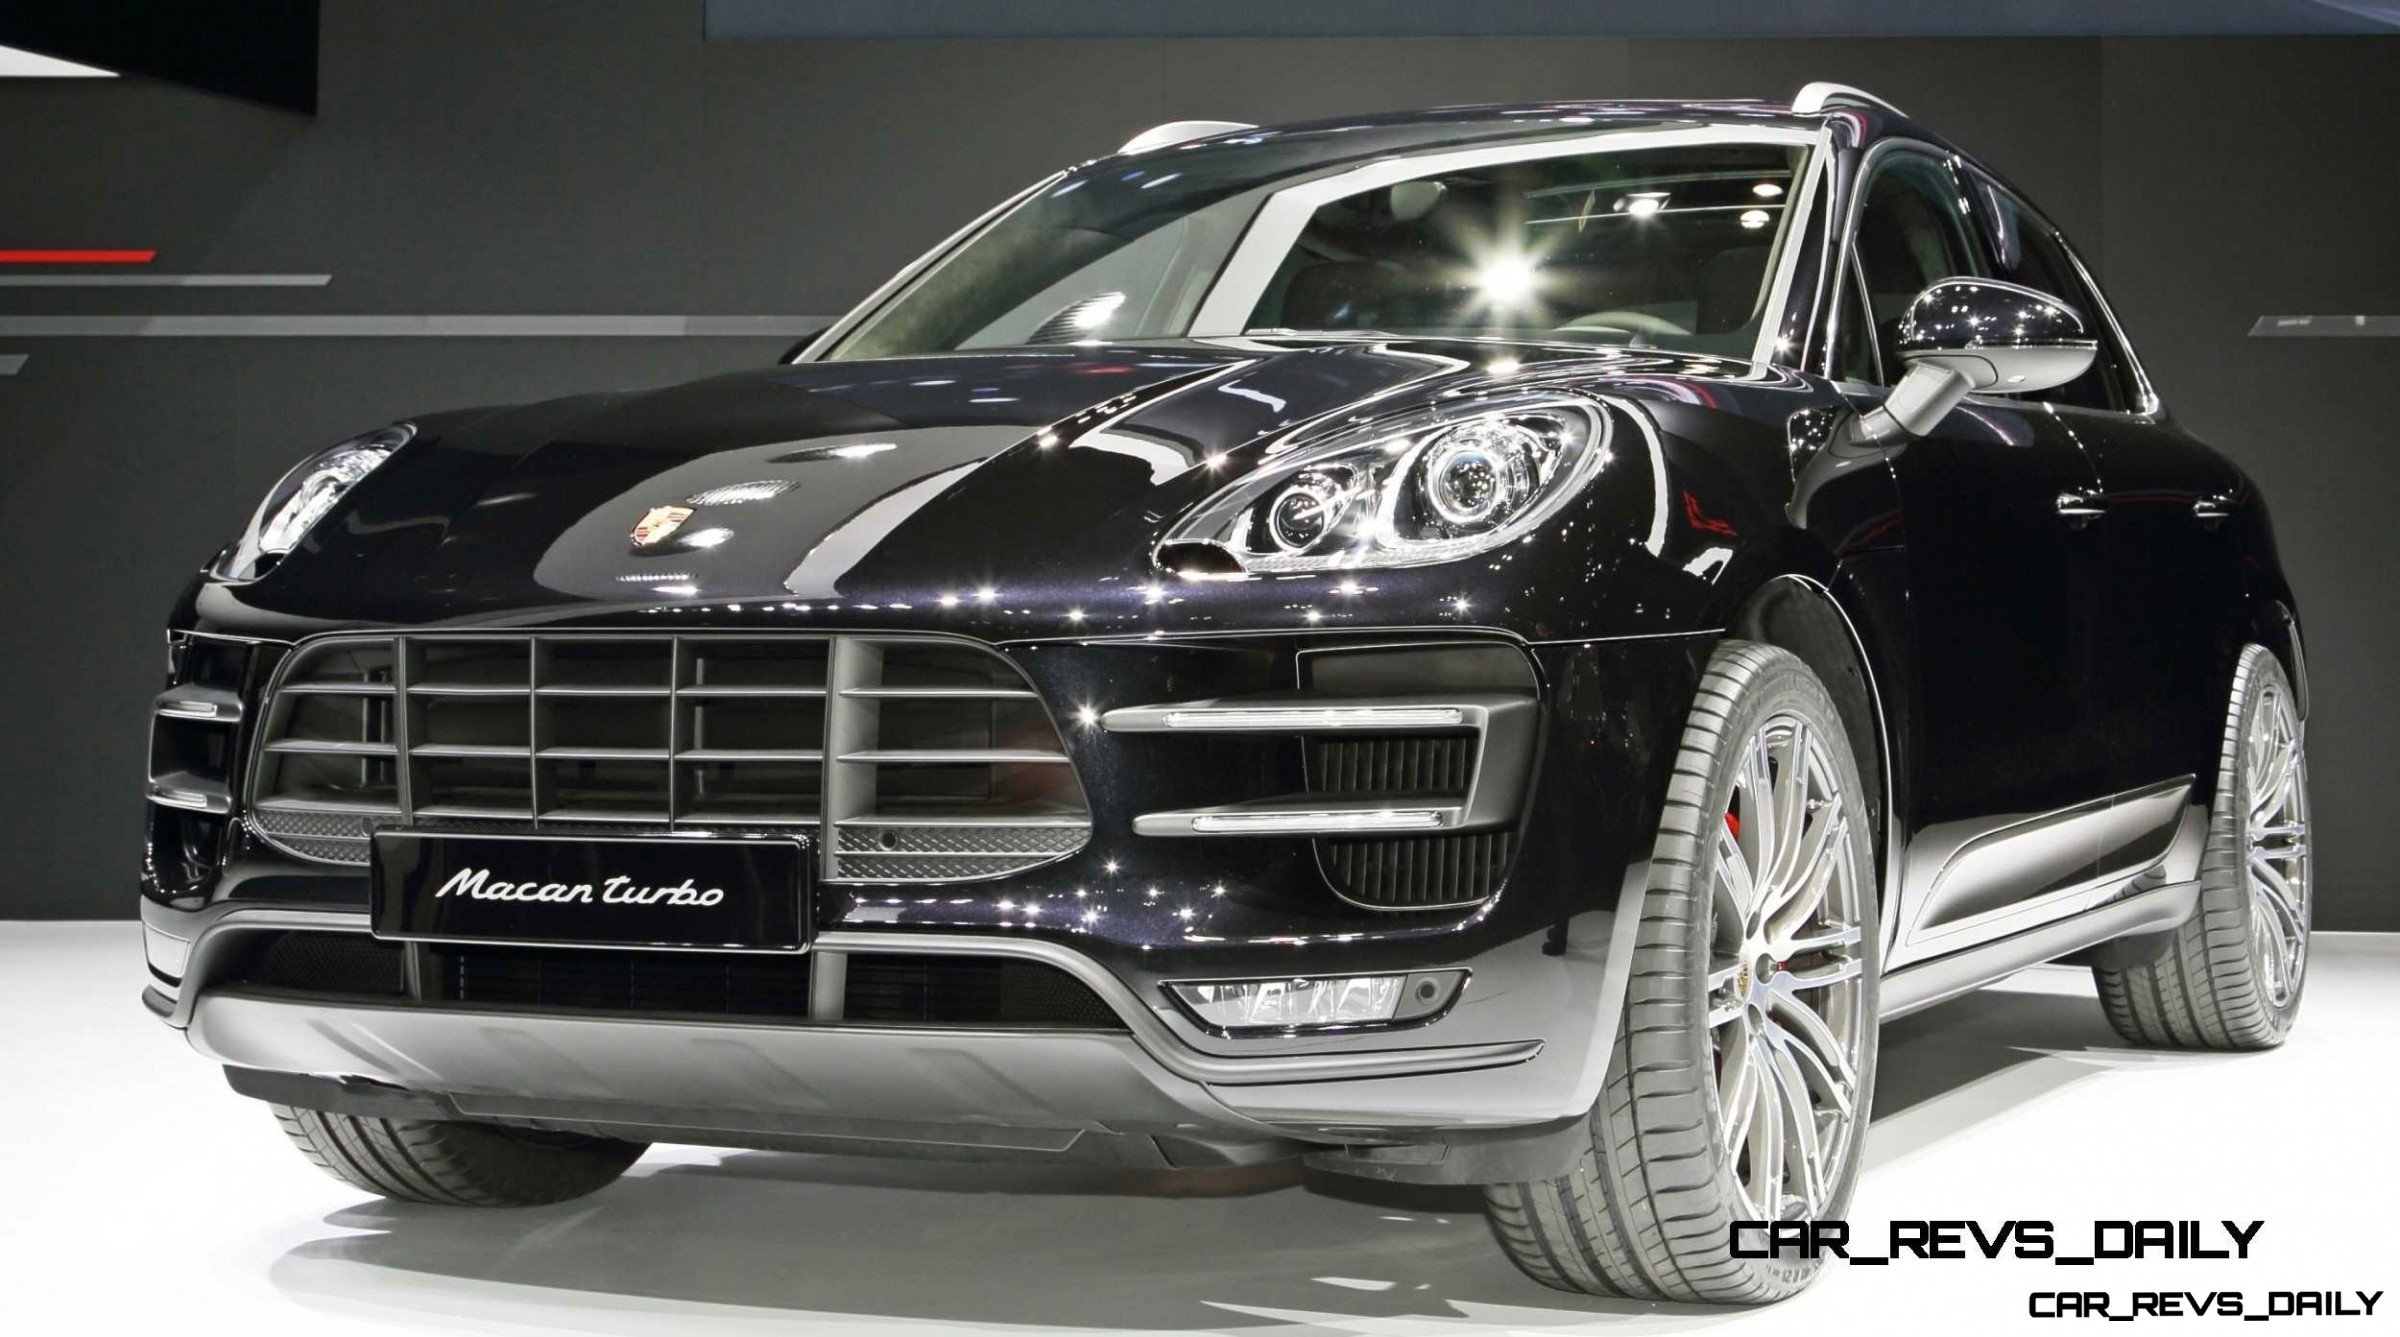 2014 Porsche Macan Turbo and Macan S - Official Debut Photos15